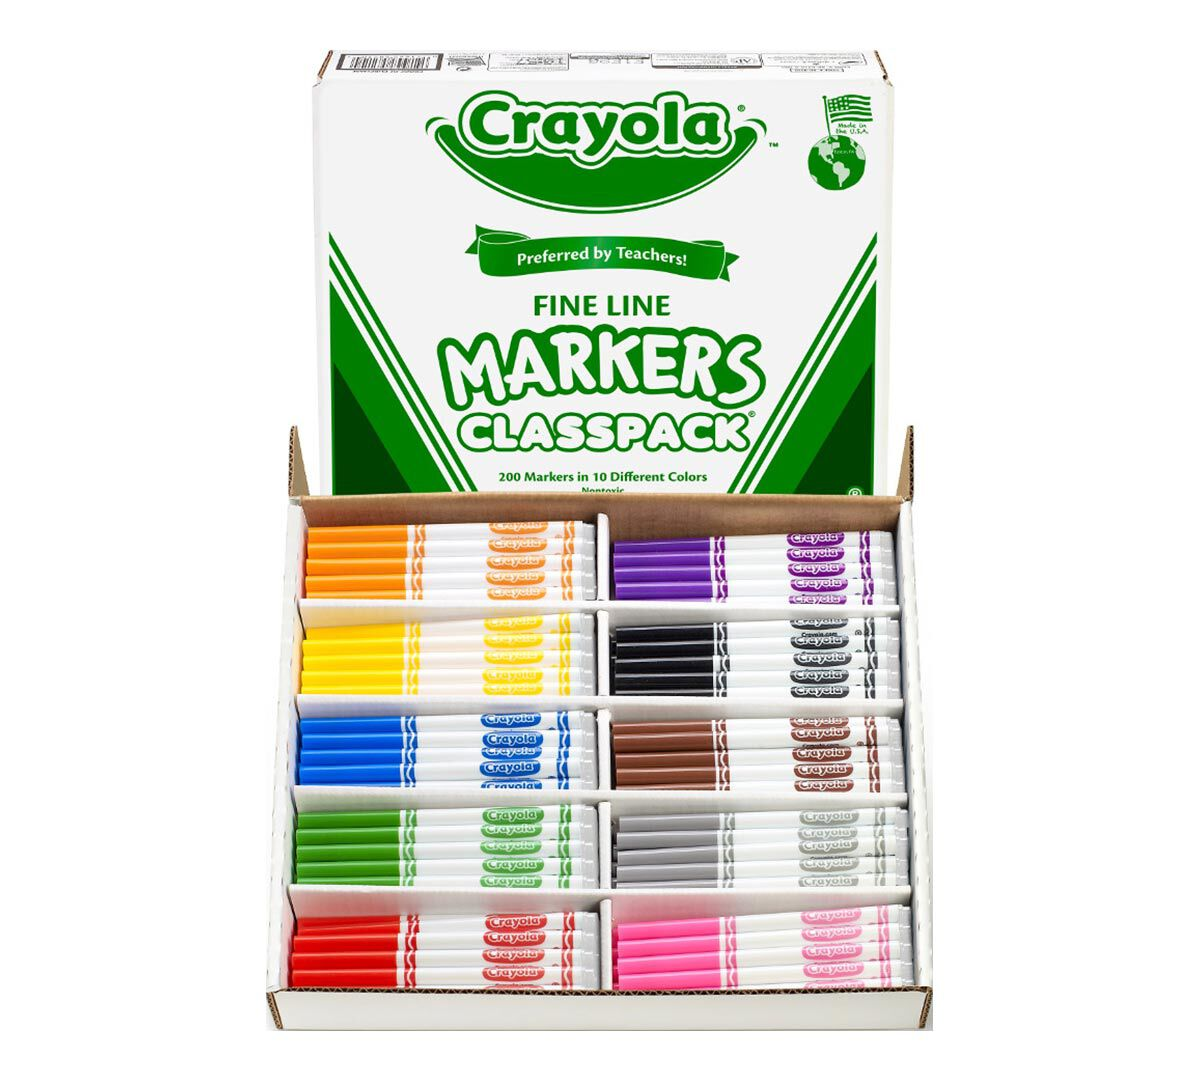 <p>Crayola Classic Fine Line Markers are the classic, long-lasting, durable markers you know from your childhood. They lay down lots of brilliant color, yet don't bleed through most paper.  Put students' imaginations to work with these classic, long-lasting, durable markers which lay down lots of brilliant color, this bulk Fine Line Marker Classpack includes enough supplies for the entire class!  A total of 200 markers are included. There are 20 markers in each of the following 10 colors: Brown, Yellow, Orange, Red, Violet, Blue, Green, Black, Flamingo Pink, and Dolphin Gray.</p>